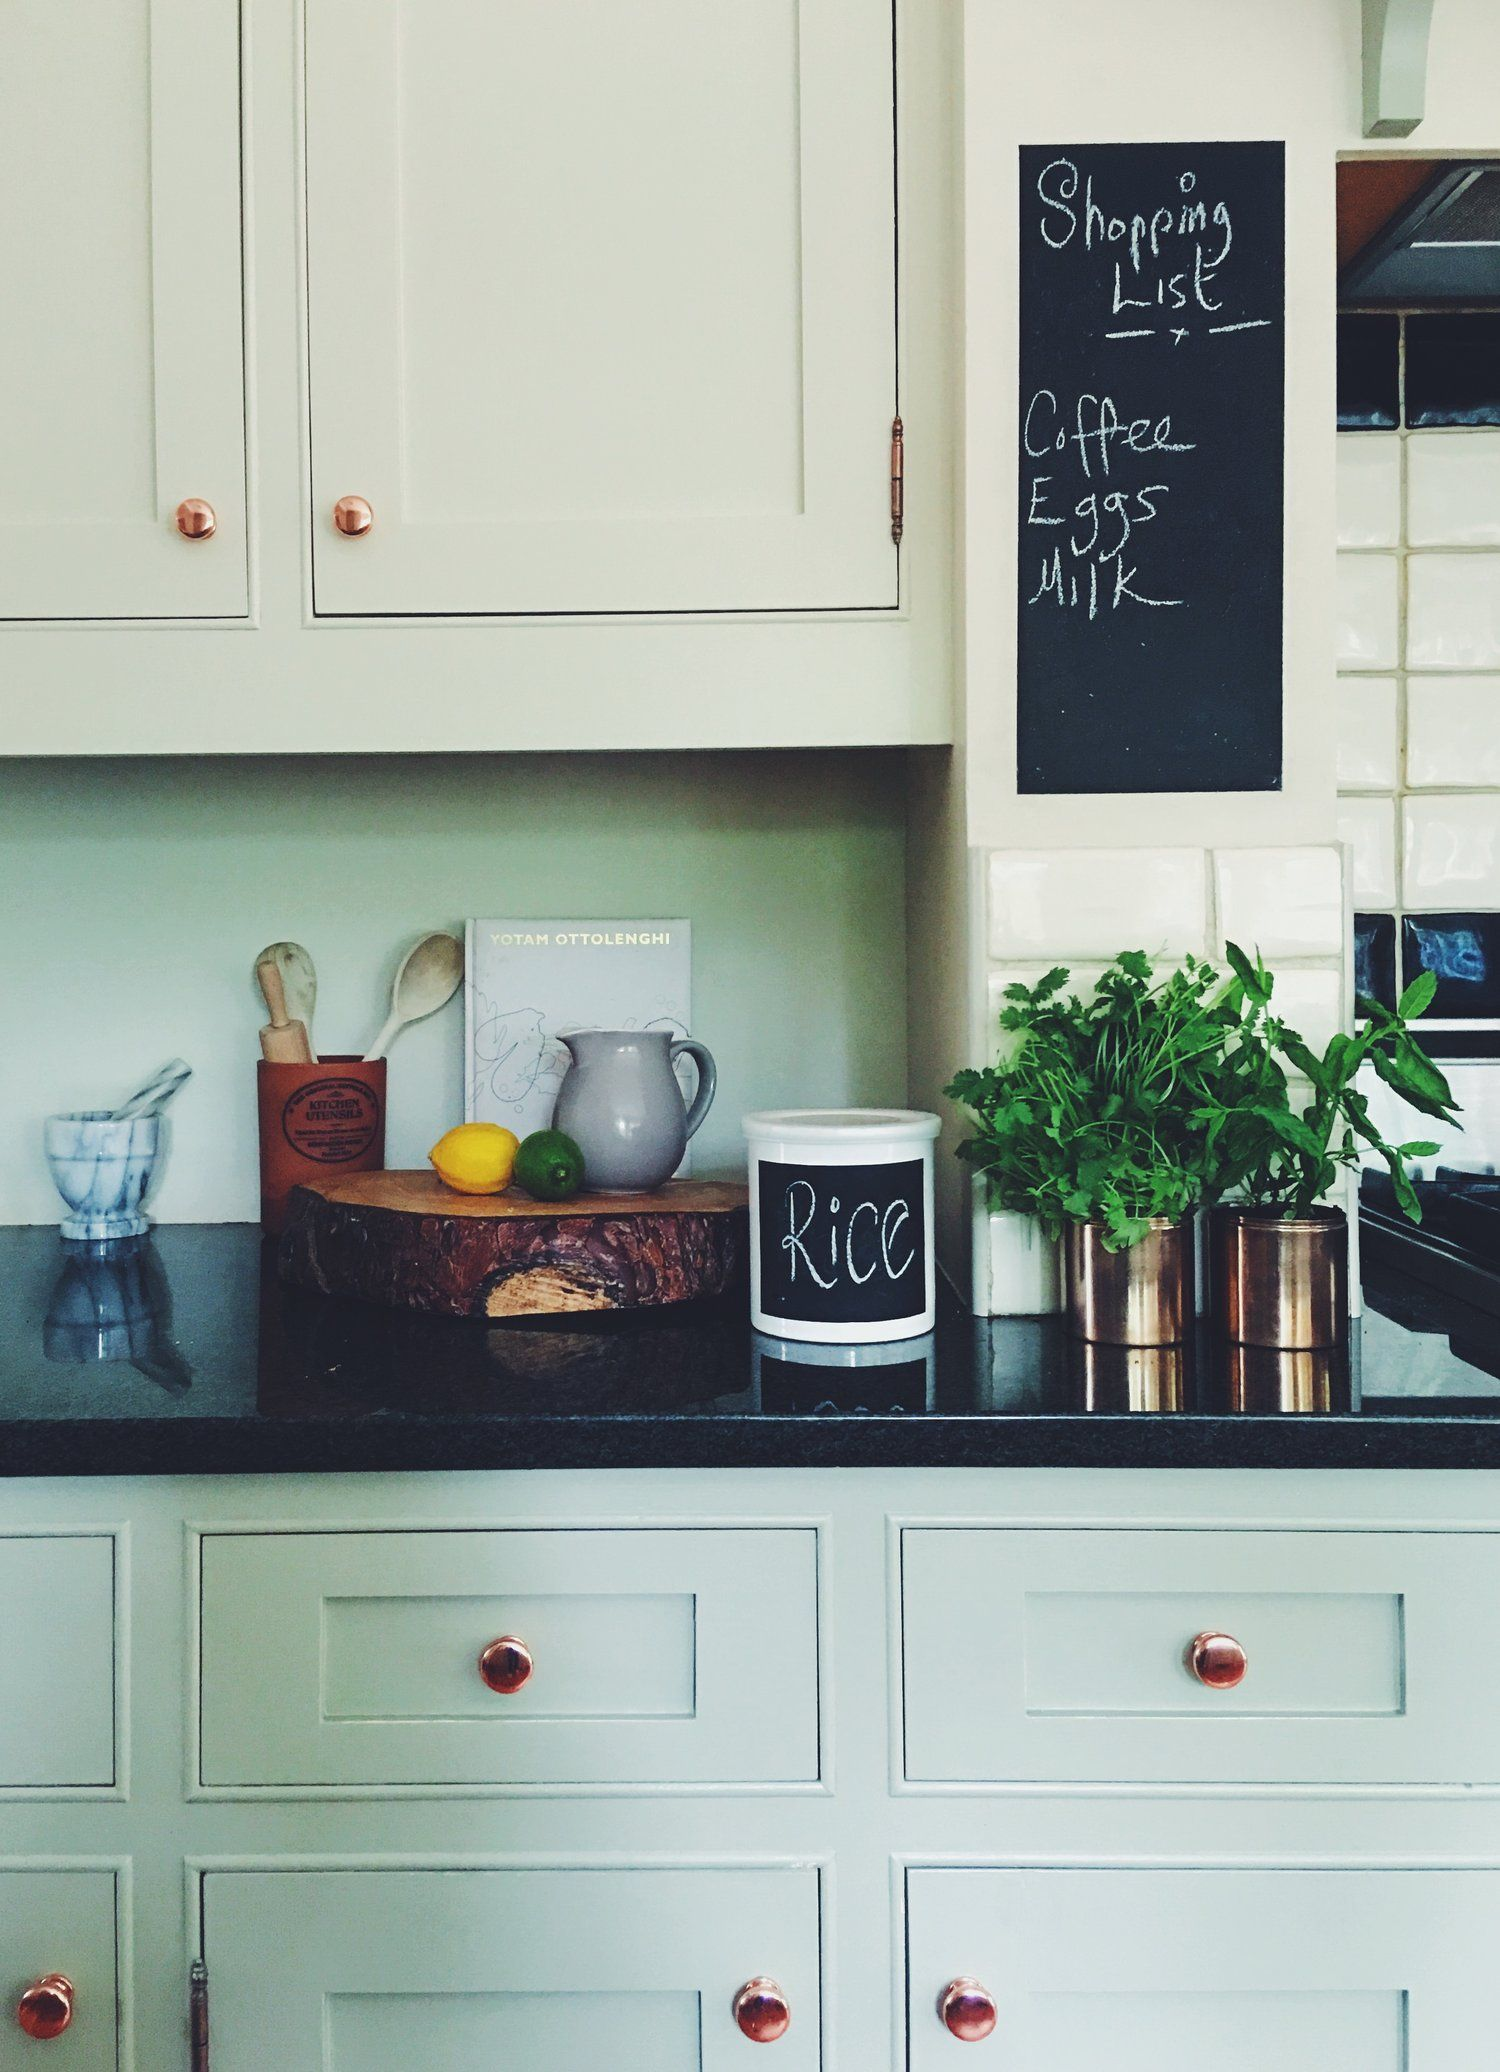 How To Use Chalkboard Paint In Your Home | Pinterest | Chalkboard ...